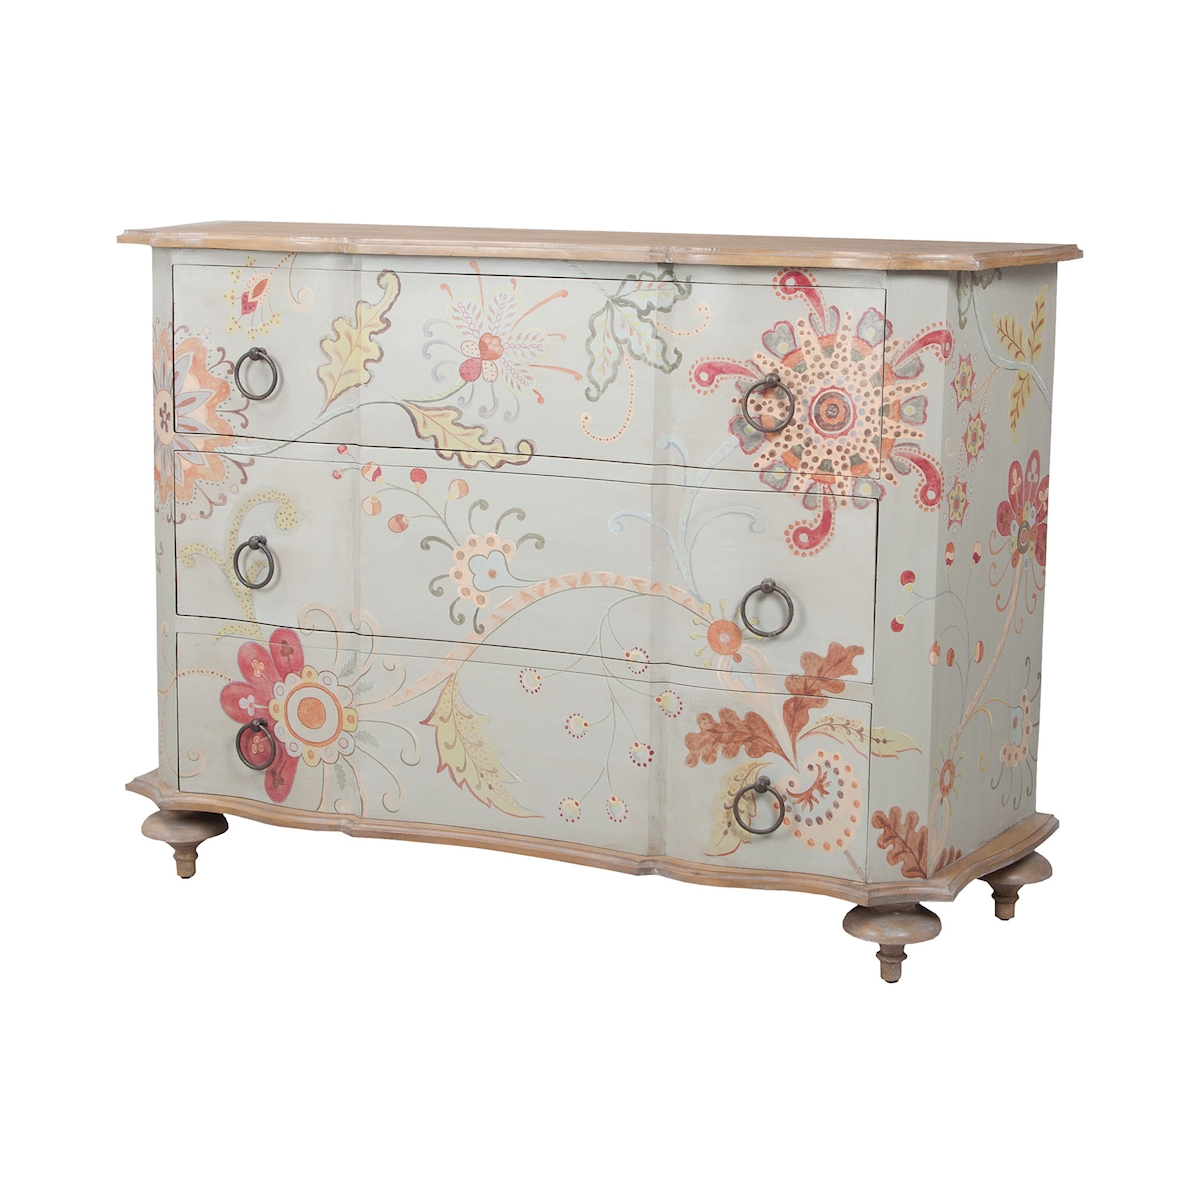 Manor Duchess Chest in Manor Griege with Hand-Painted Pastel Floral Art | Elk Home